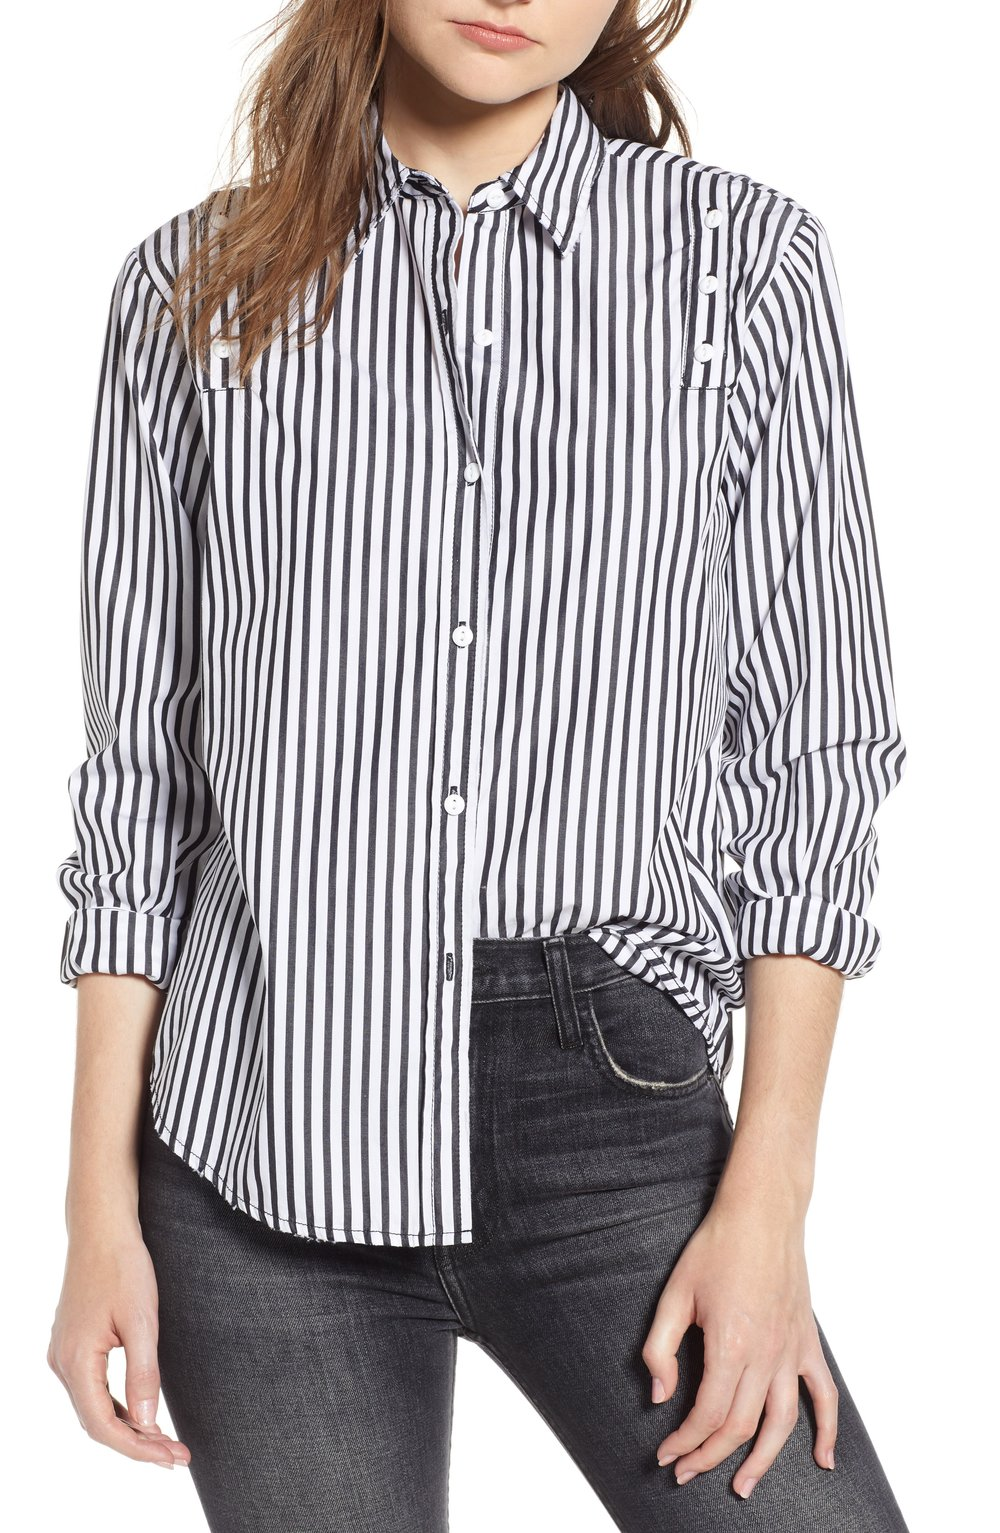 black and white stripe shirt.jpg